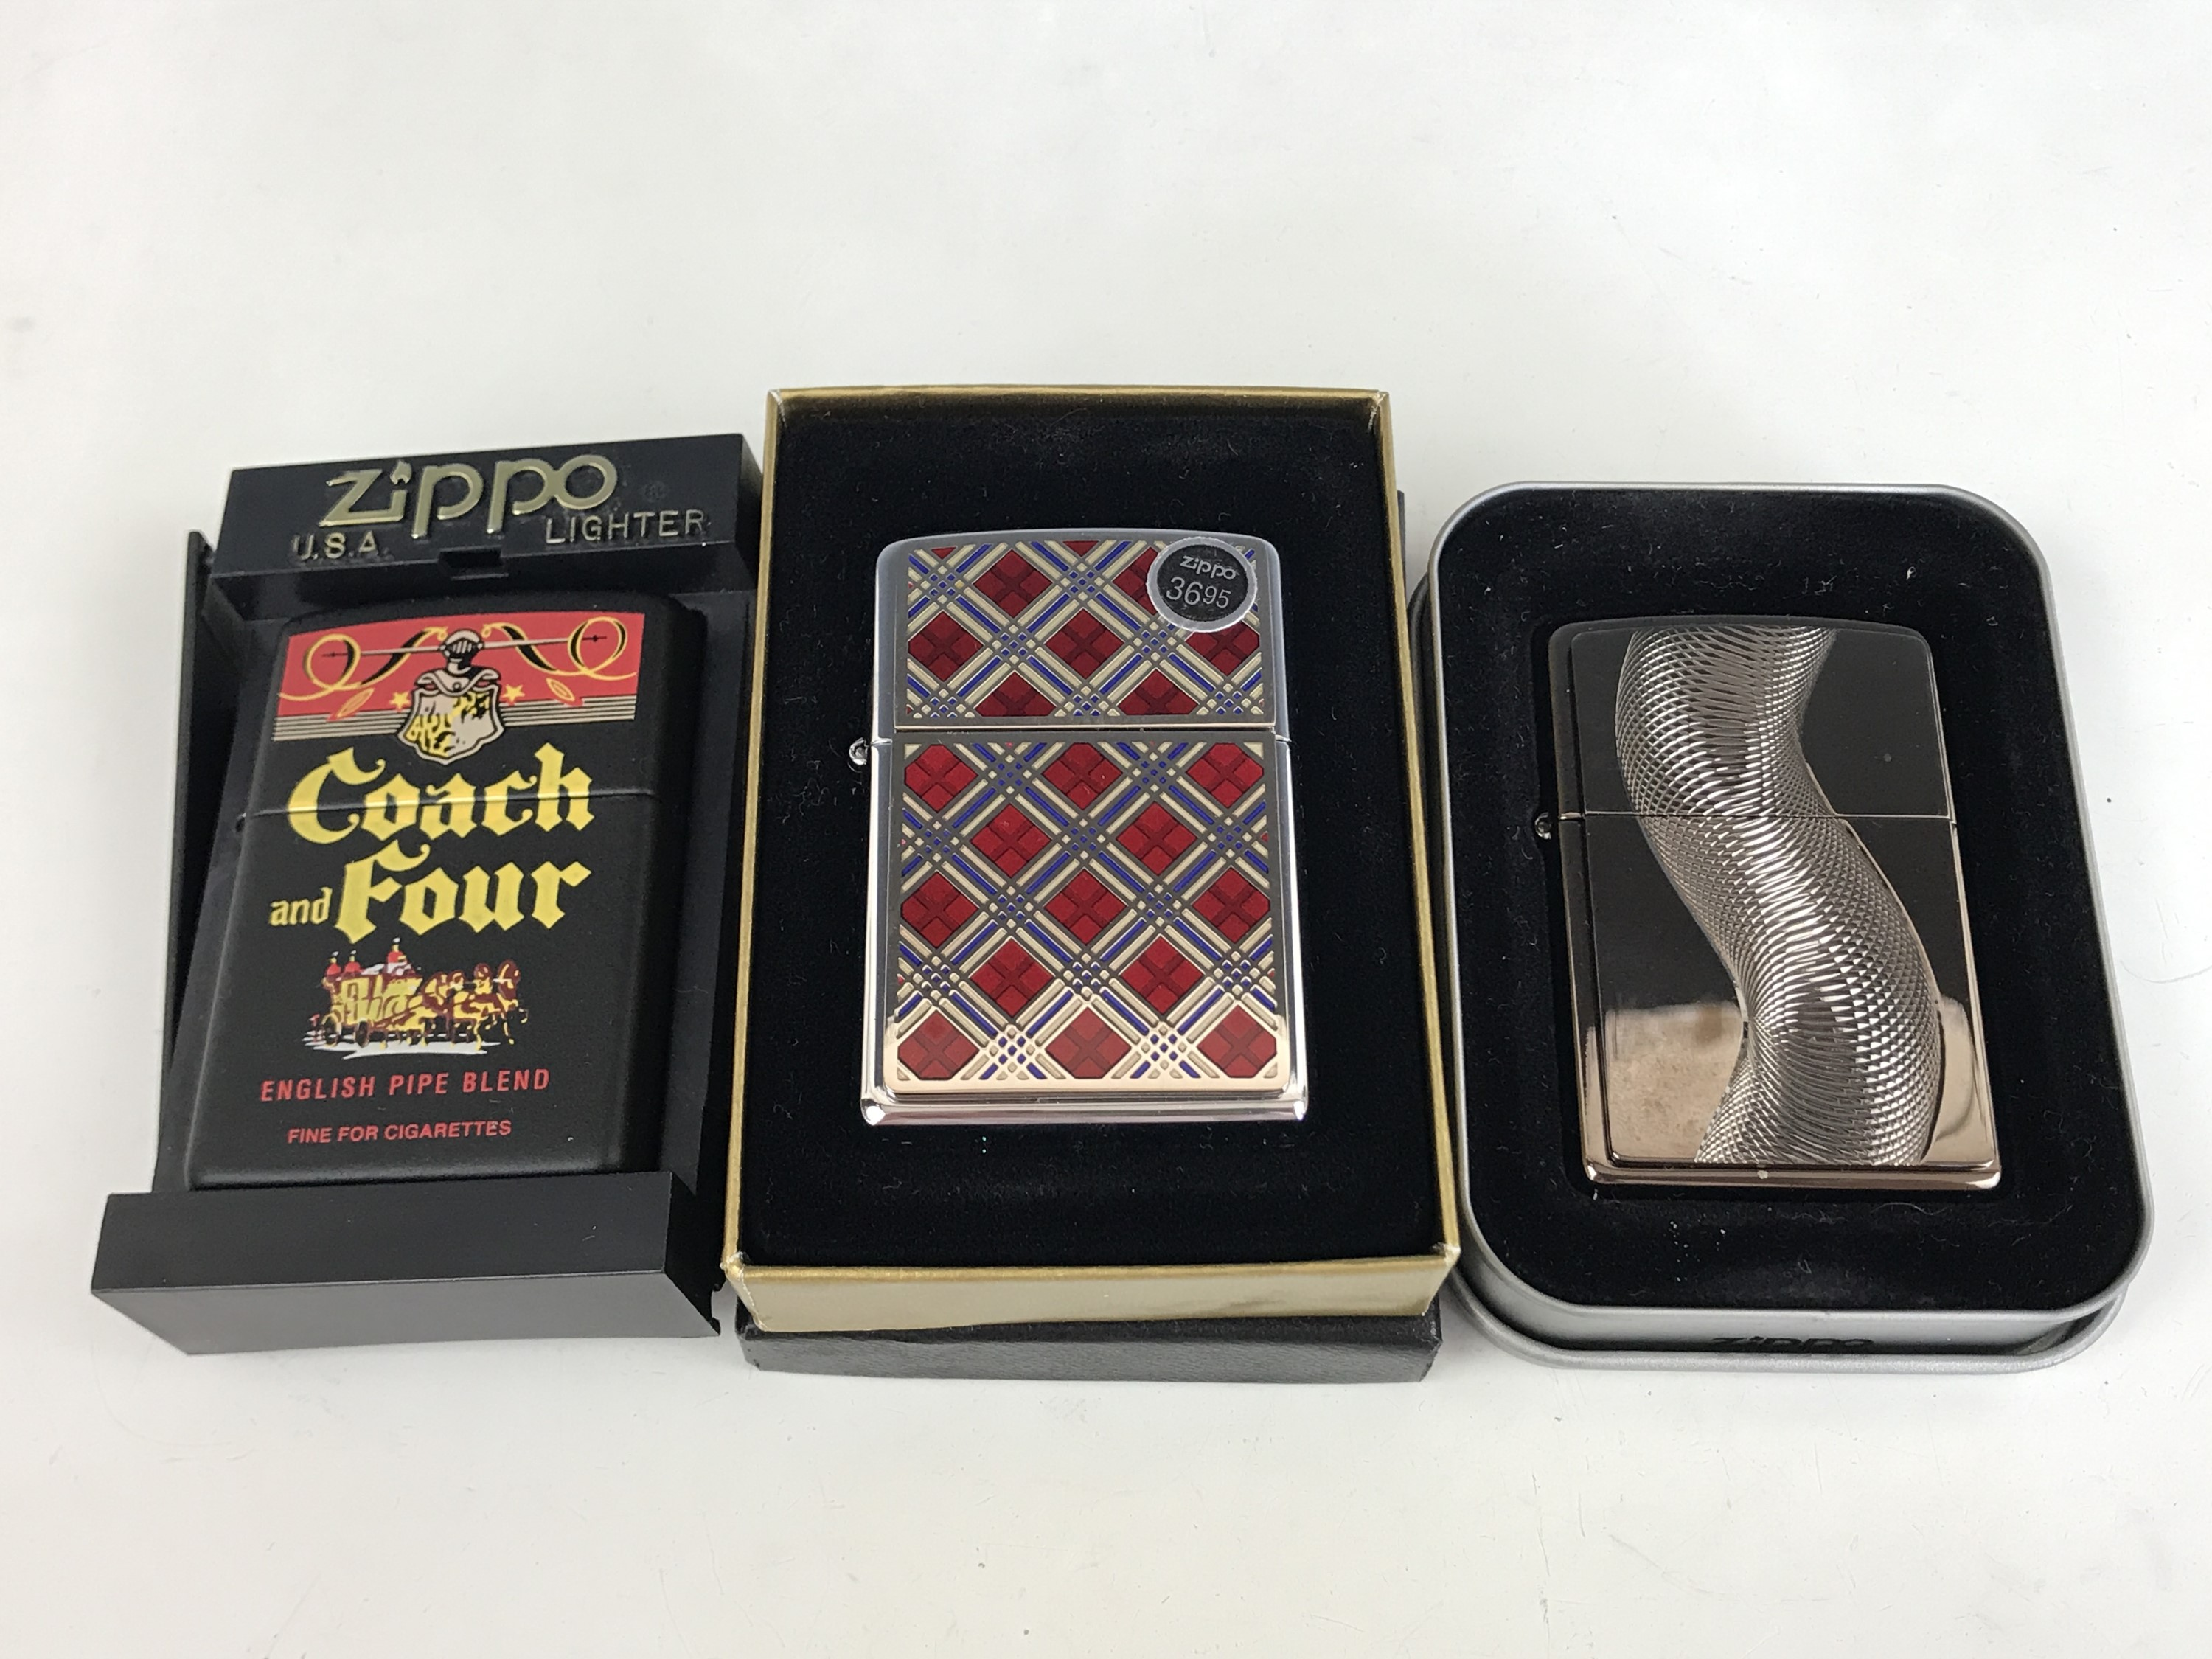 Lot 20 - Three cased Zippo lighters, including the Coach and Four from the Tobacco Tin Series, and No.